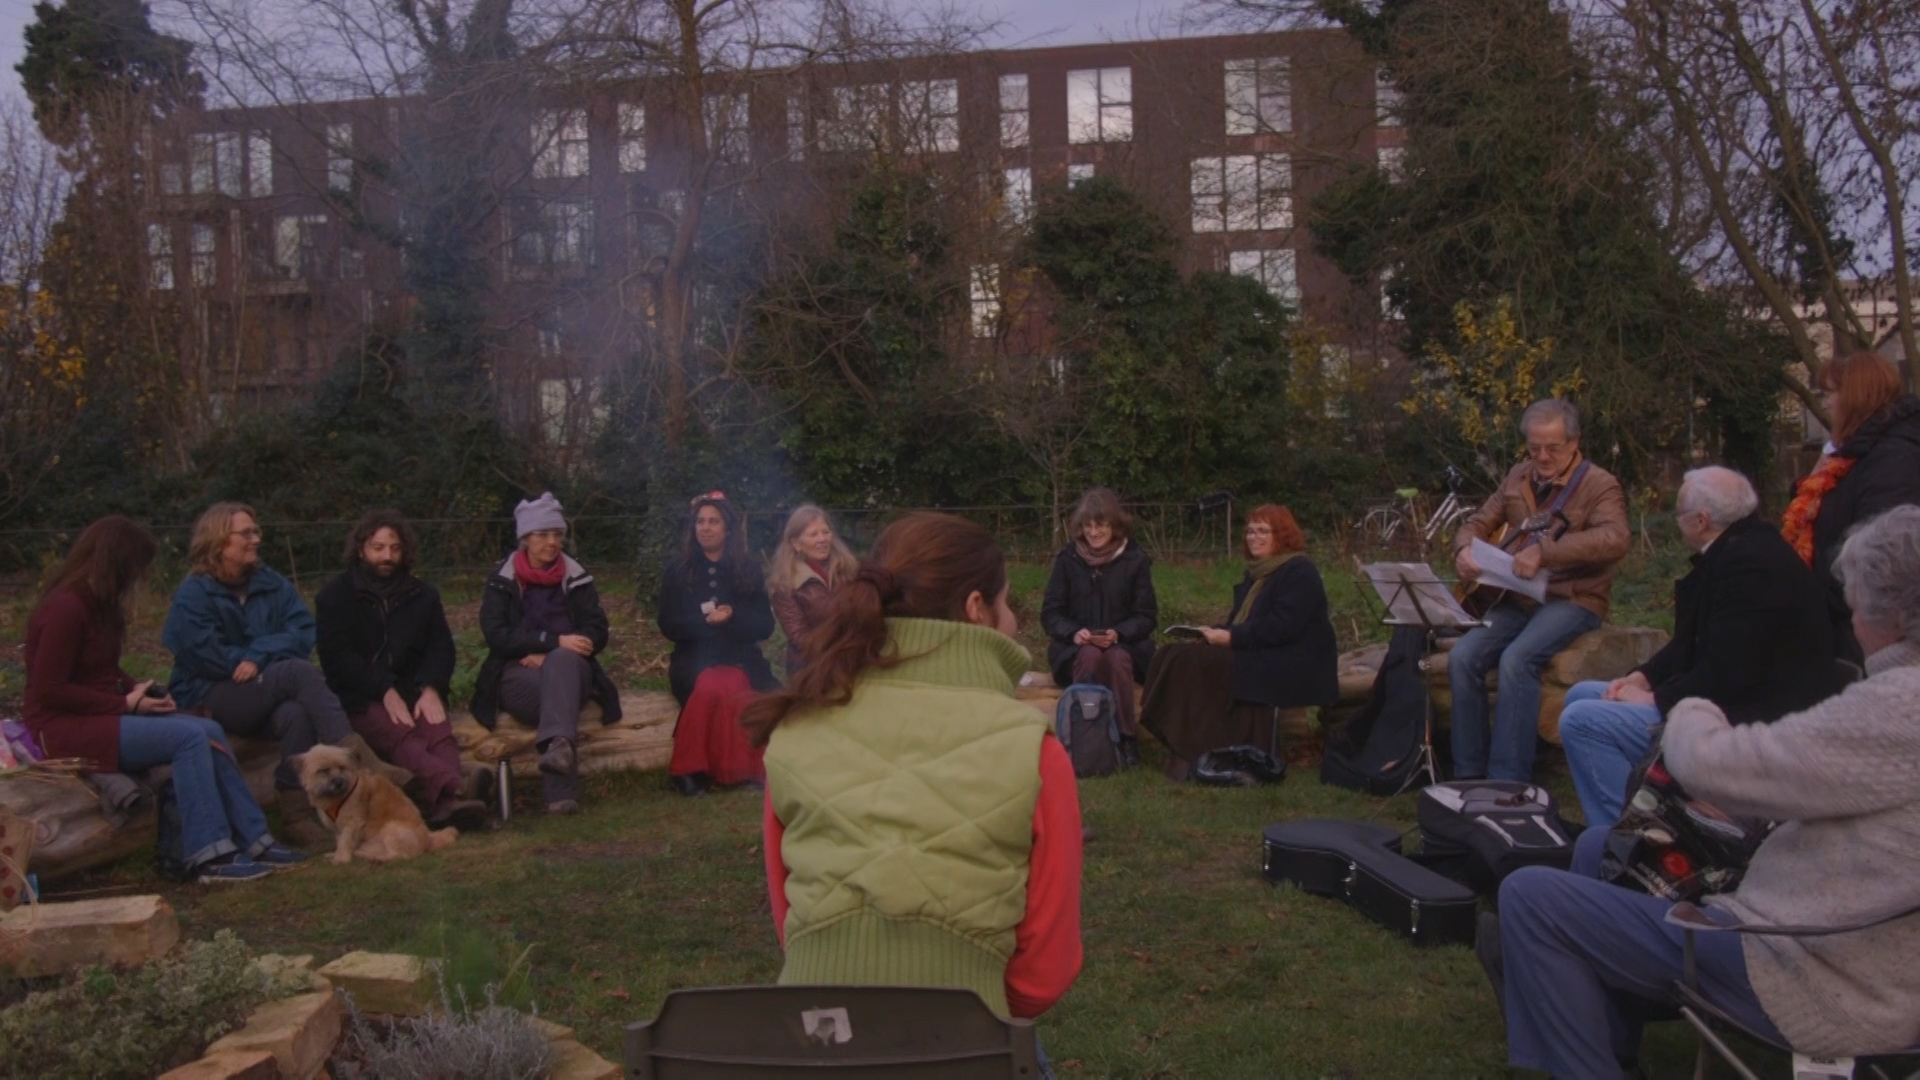 Garden Party at Empty Common, 2015